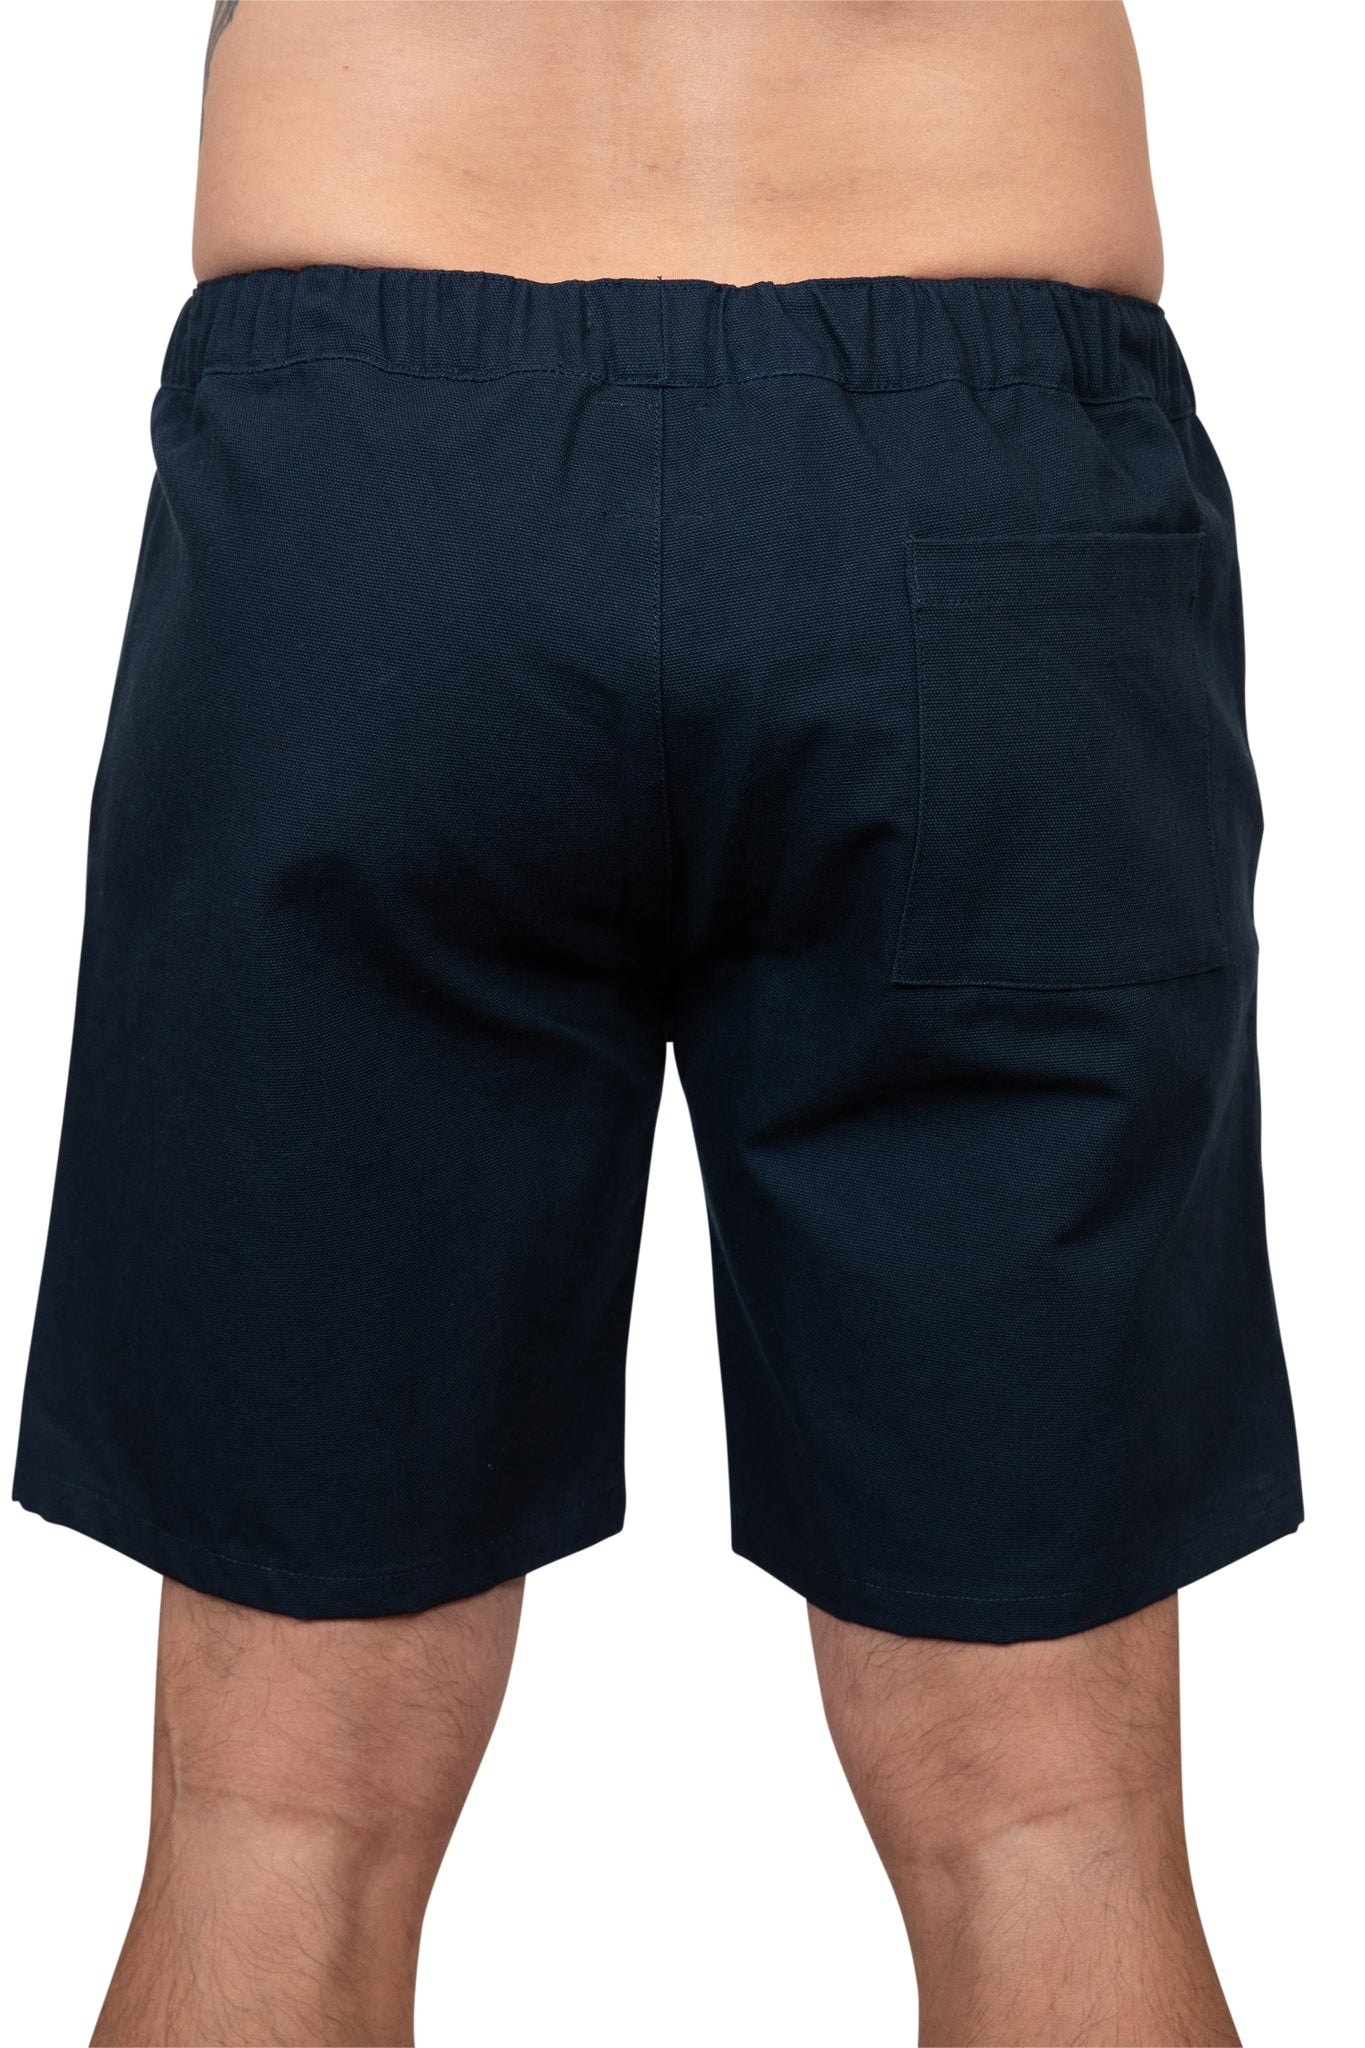 KINN 398 Collection Cotton walk shorts in Navy